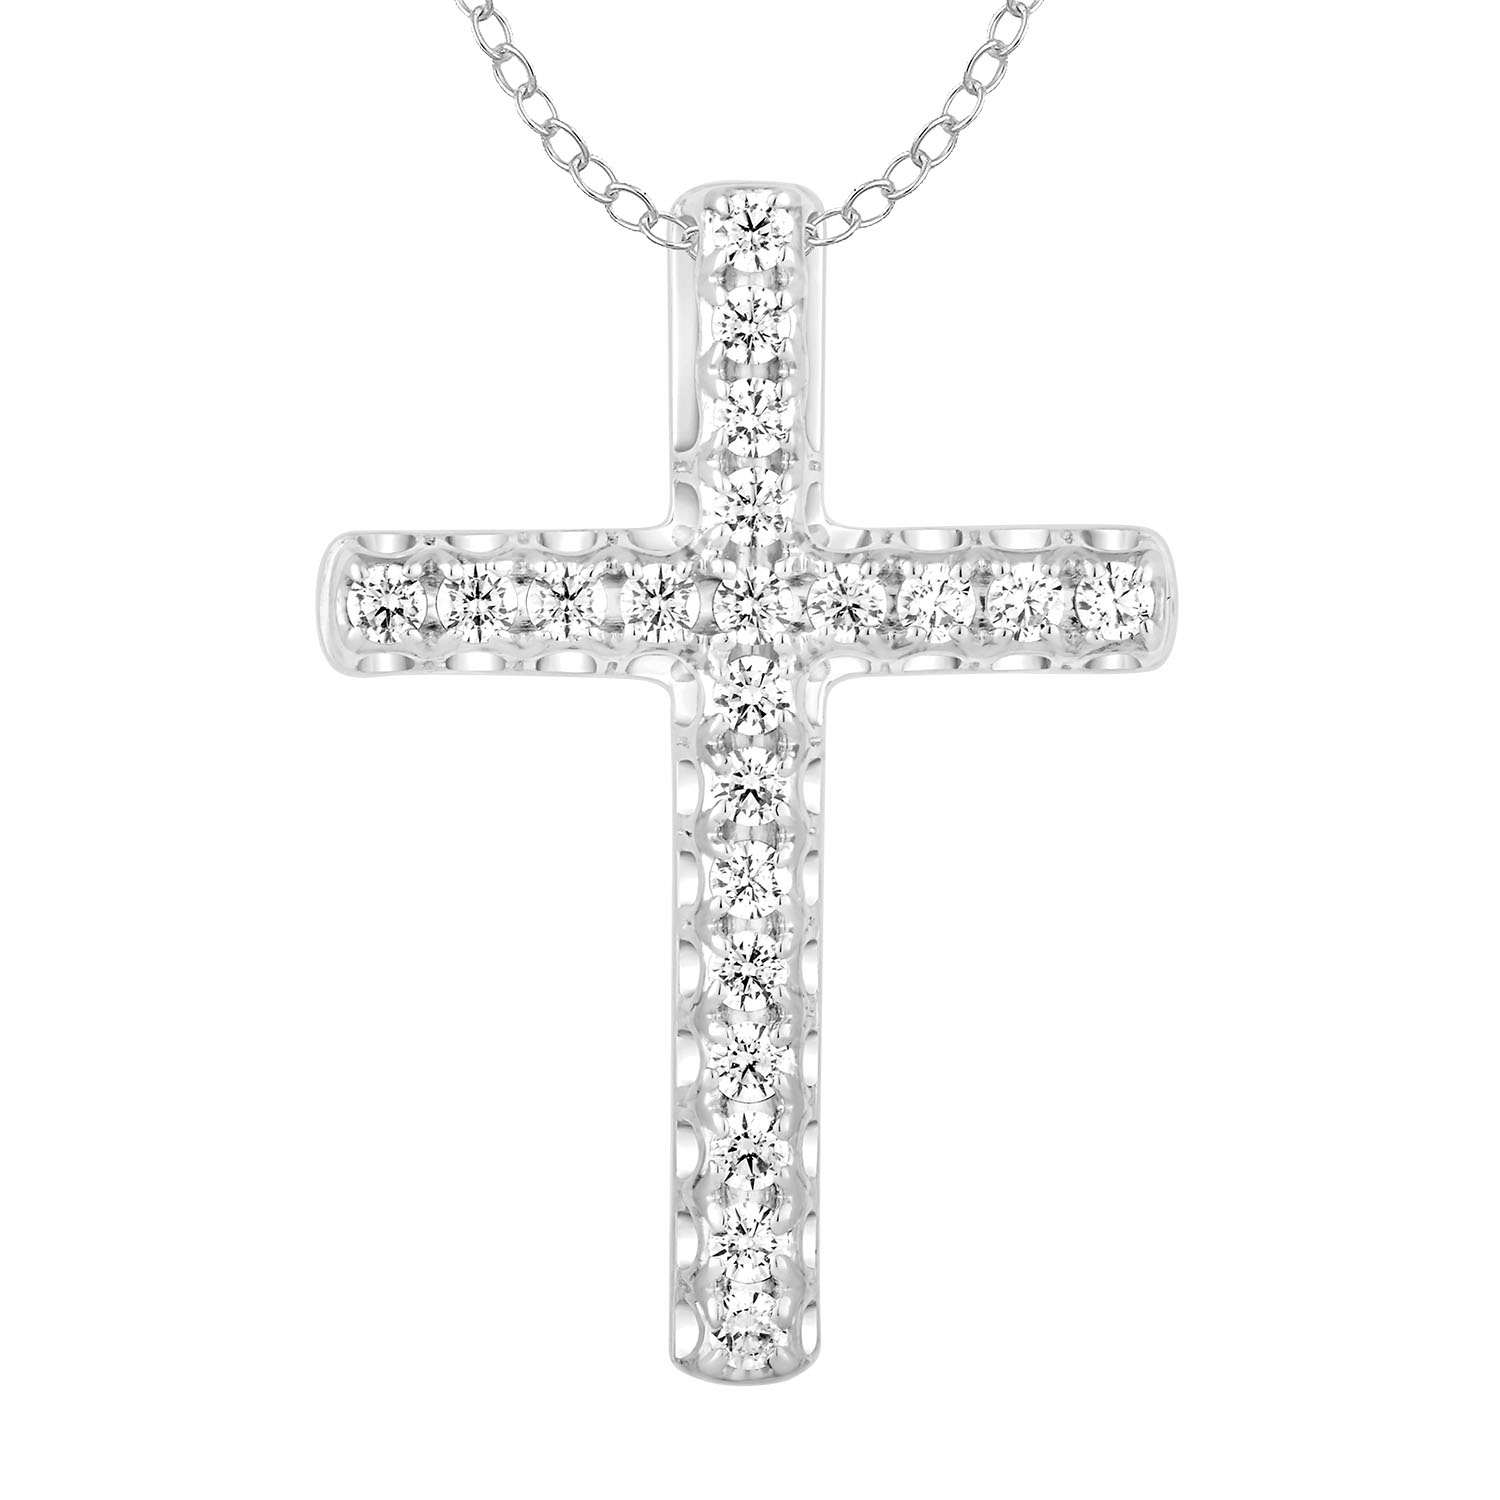 9ct White Gold Cross Pendant with 1/4 Carat of Diamonds including Chain